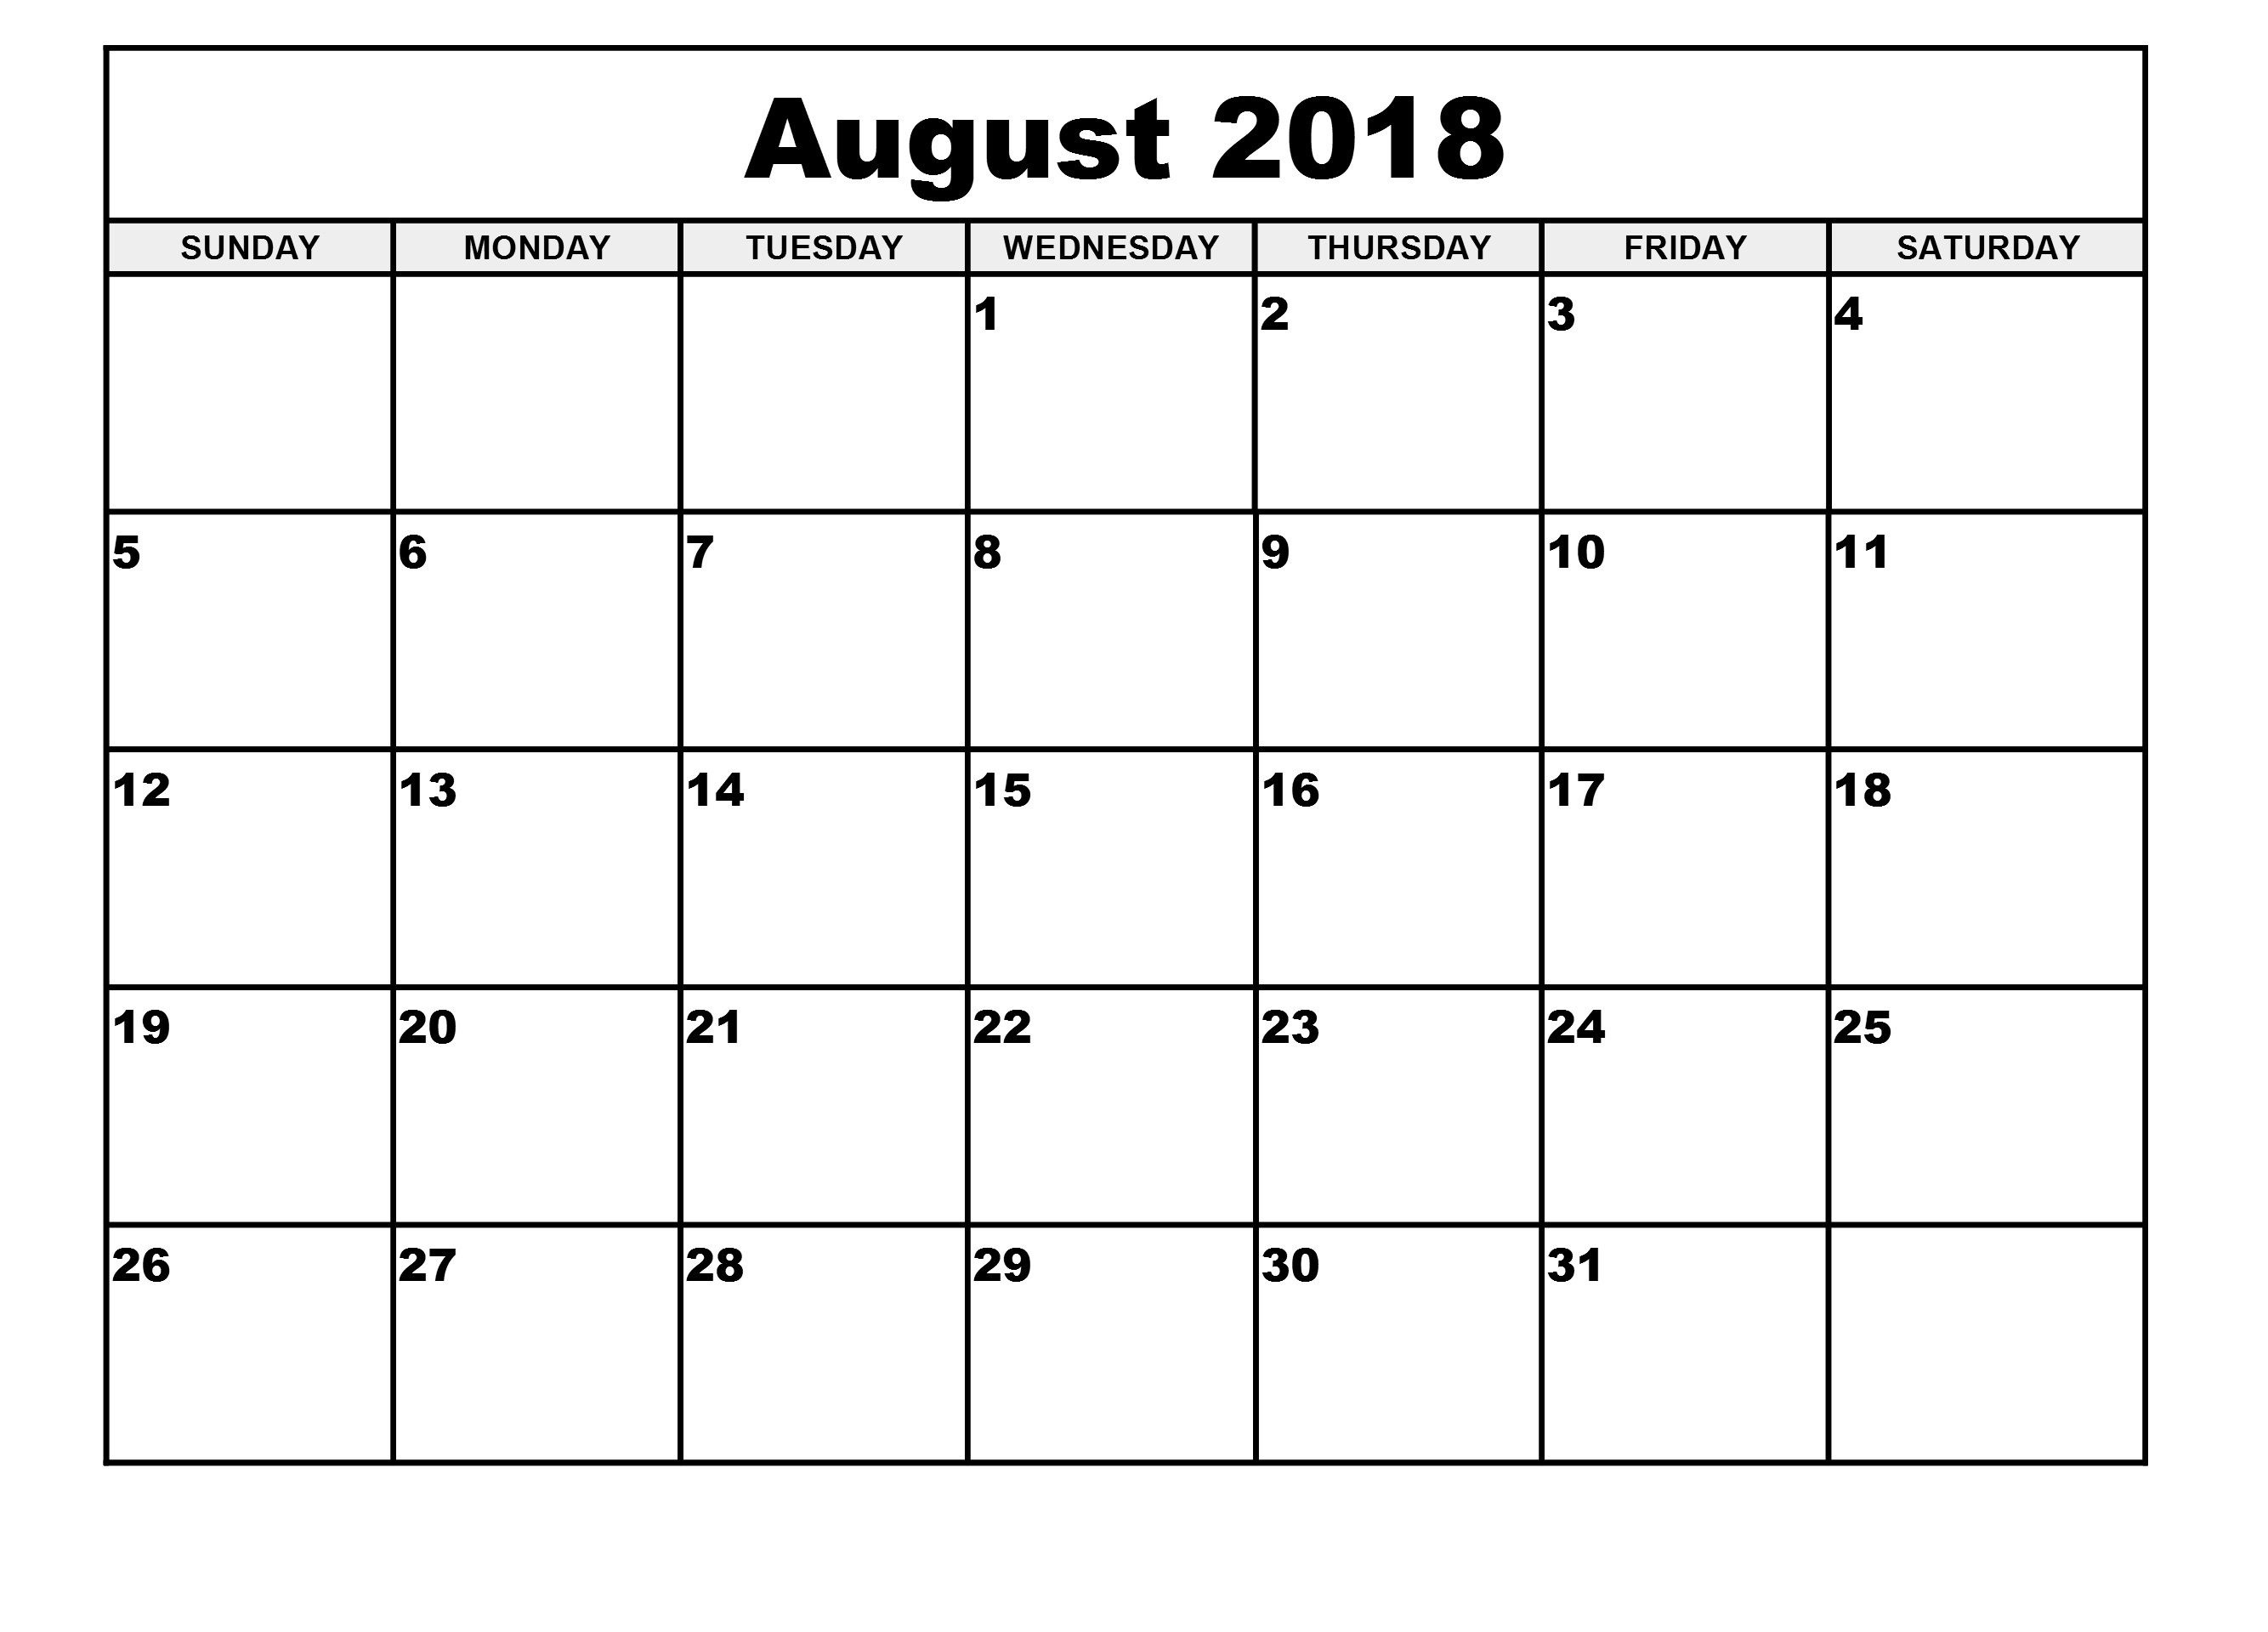 Calendar 2018 August Blank Printable Template | December 2018  Blank Printable Calendar By Month